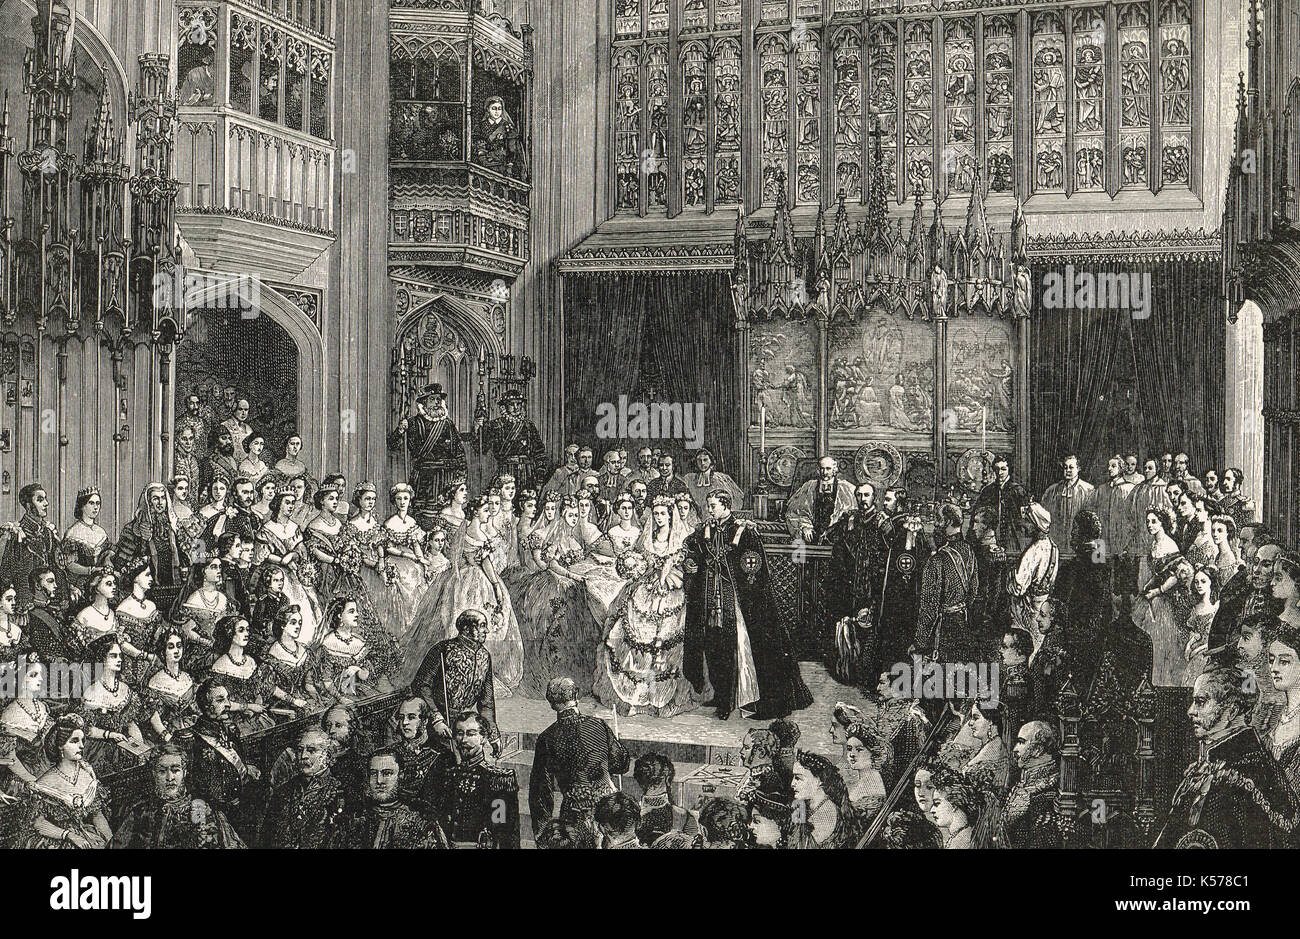 Marriage of the Prince of Wales (Future Edward VII) to Alexandra of Denmark, 10 March 1863. - Stock Image